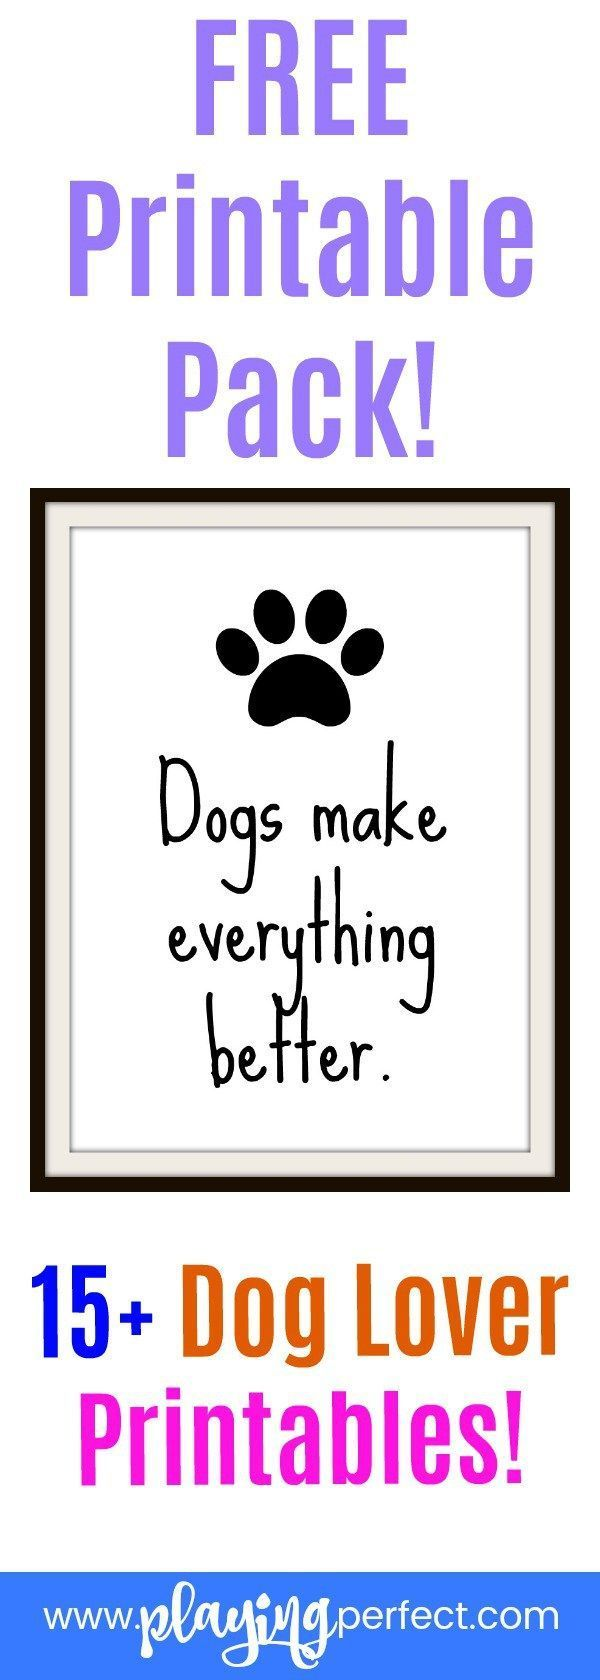 Free dog decor! Dogs are so wonderful and if you want to decorate your home or office with some dog inspiration here are the dog printables for you! These dog lover printables will be the best dog wall art for dog moms and dog dads! Also, come check out this list of 101 dog gift ideas! FREE printable! | playingperfect.com | #dogprintable #doglove #dogdecor #dogstuff #printables #decorprints #freeprintables #ilovemydog #playingperfect #wallart #printable #dogmom #dogperson #diy #dogpaw #dogs